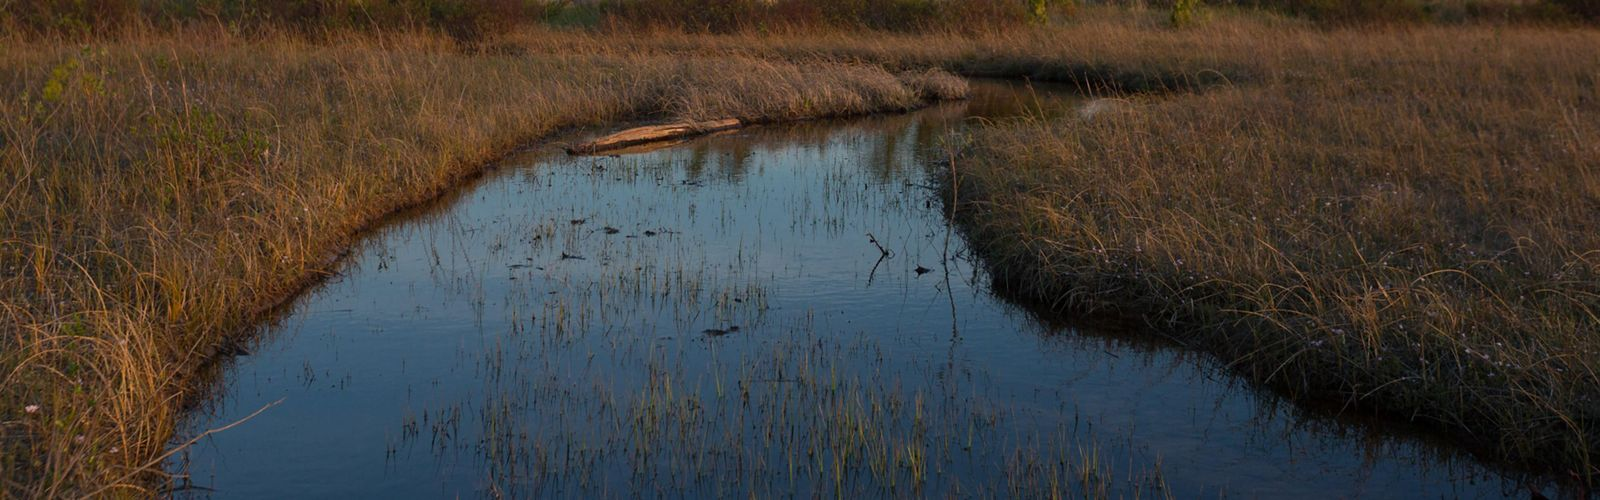 A coastal marsh with a small creek running through the center of the image. Shrubs and grass and both sides of the creek